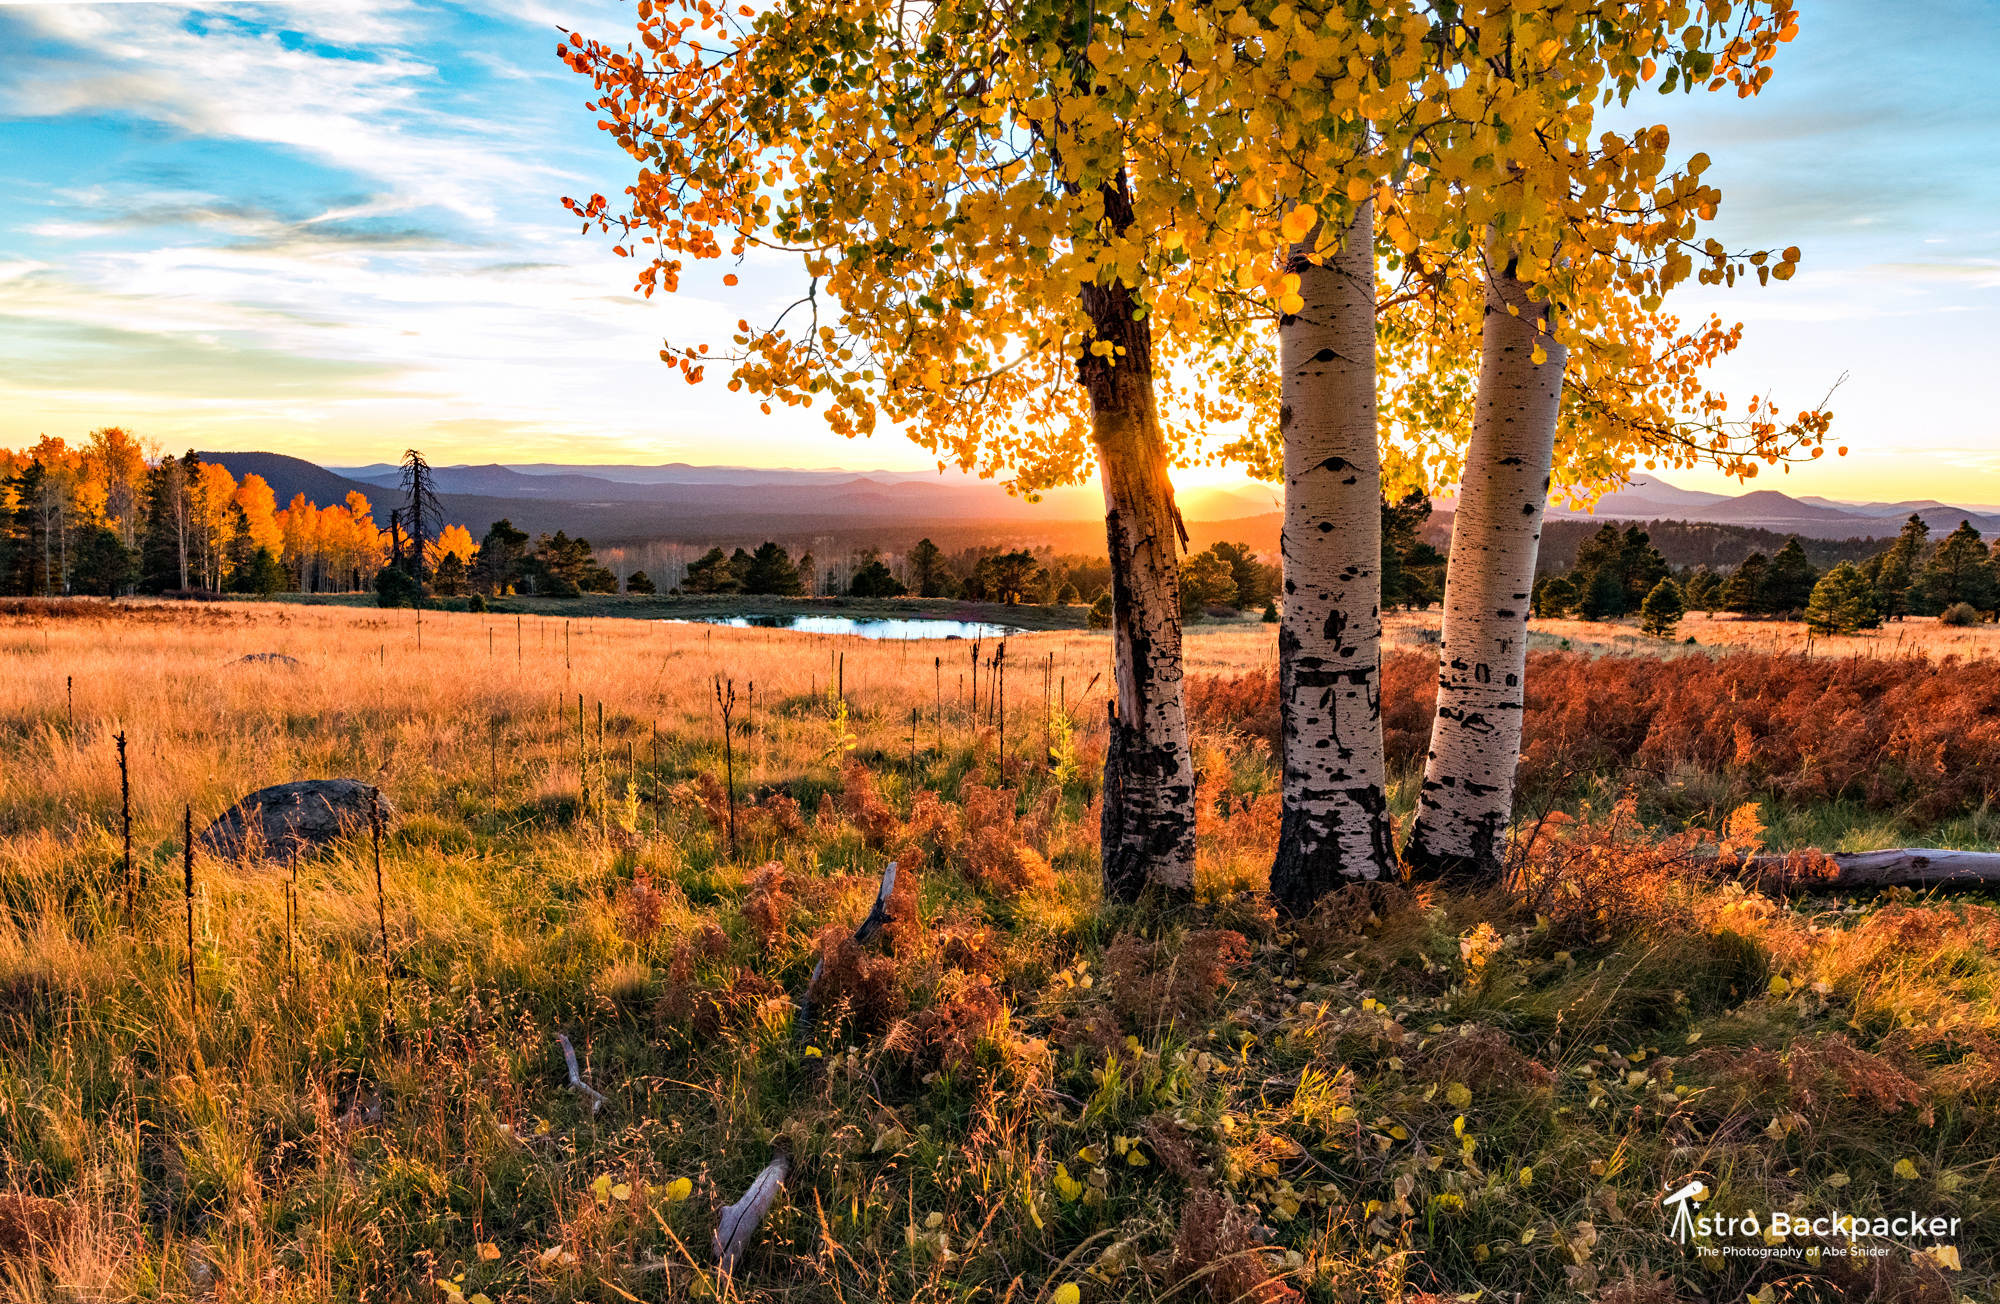 Autumn in the High Country